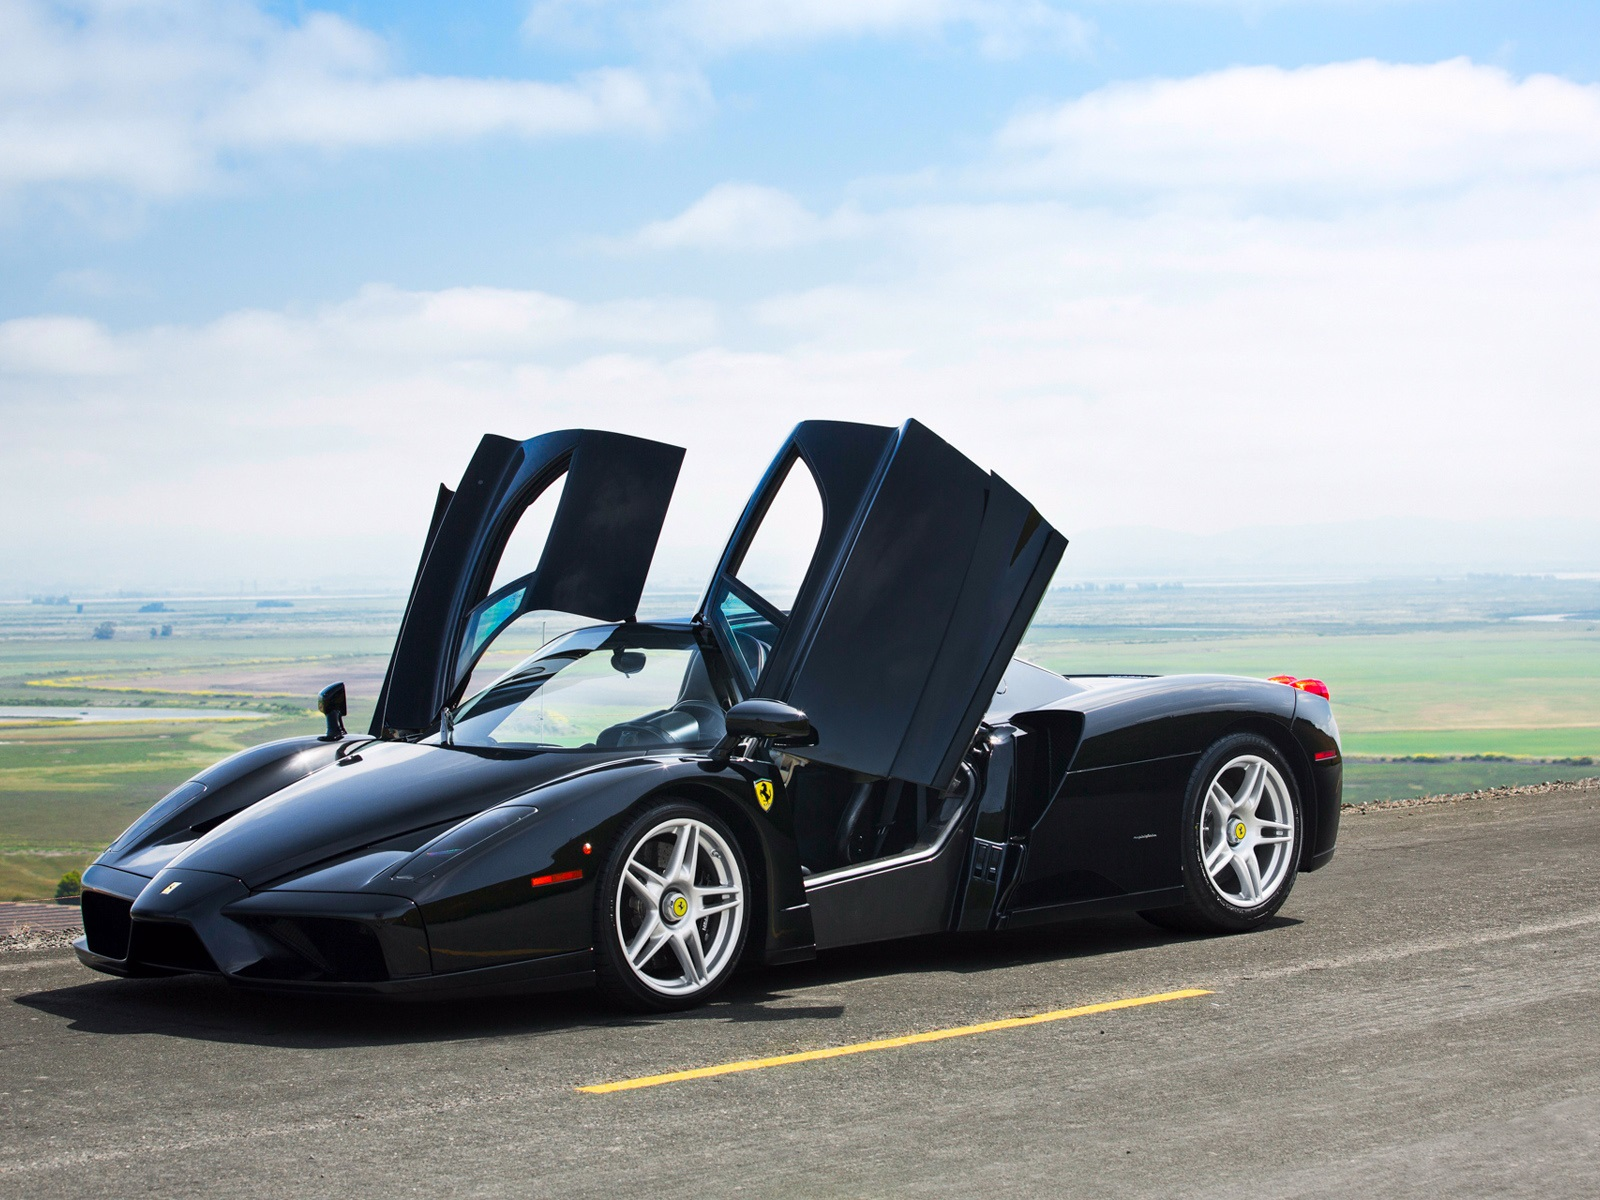 Wallpaper Ferrari Enzo Black Color Supercar Doors Opened 1920x1200 Hd Picture Image